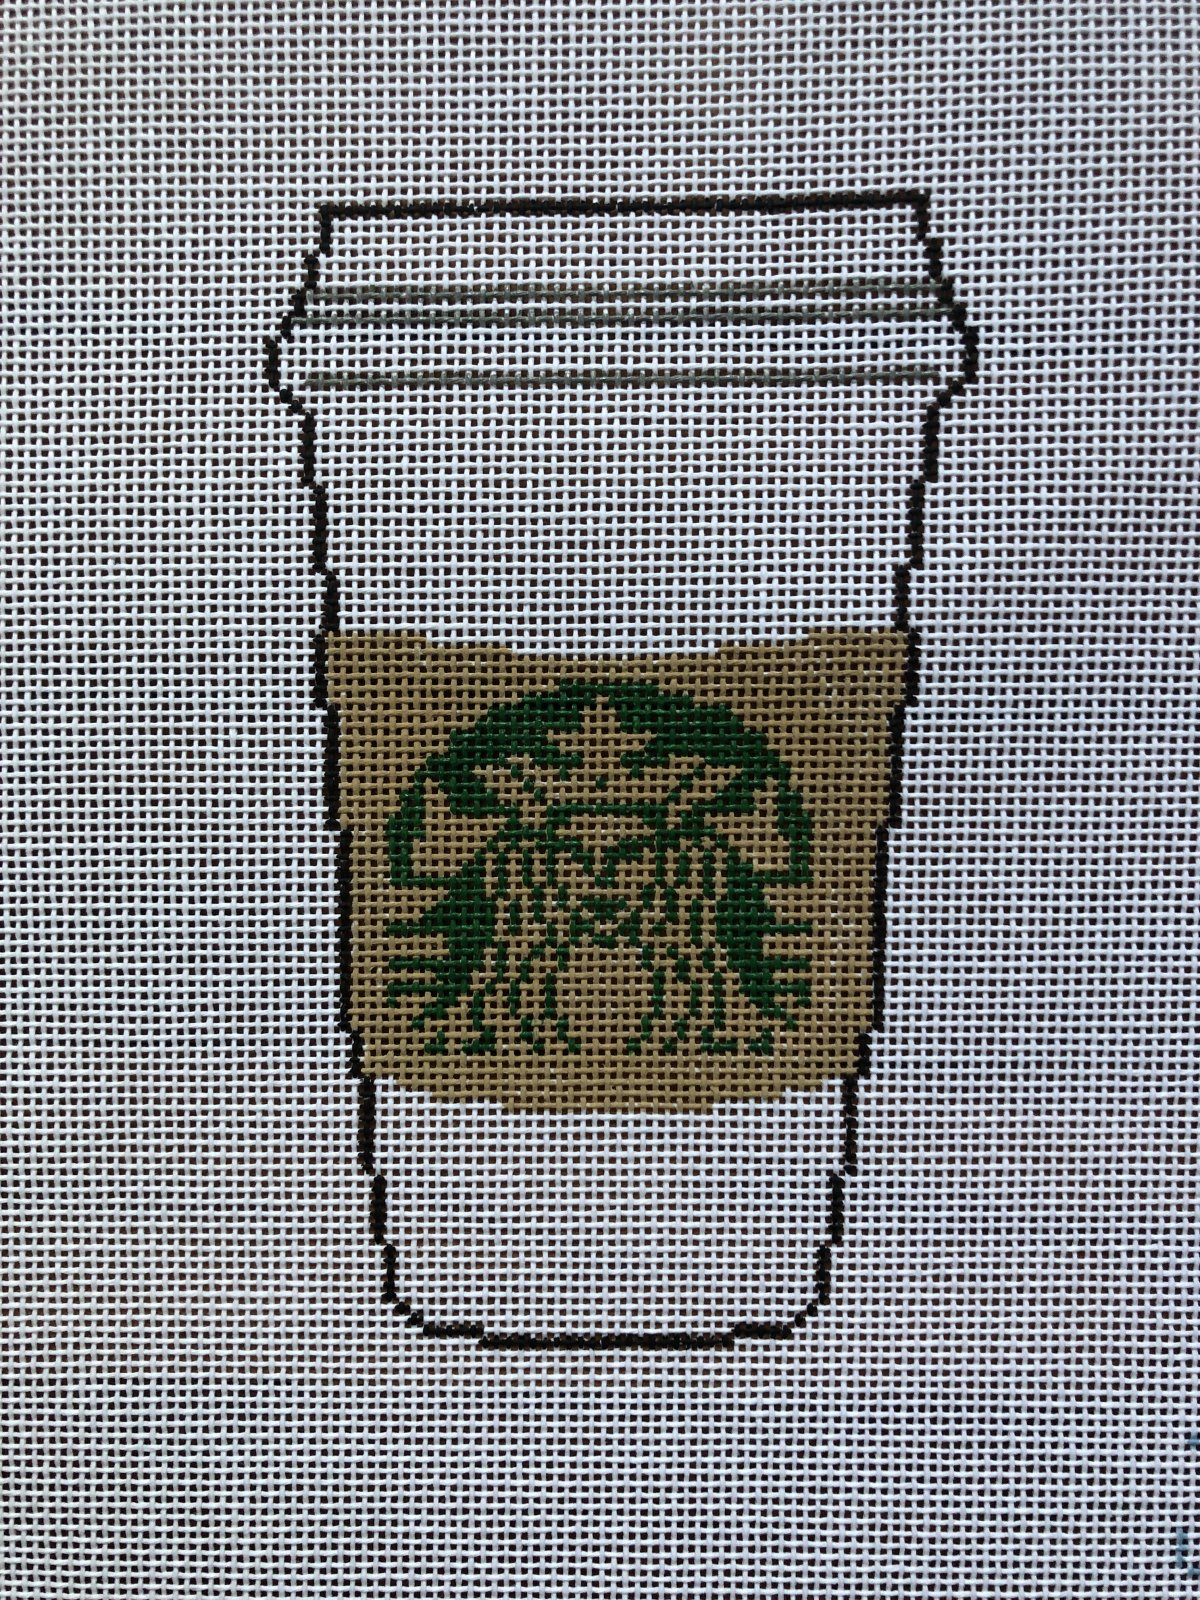 Starbucks Cup by Jessica Tongel